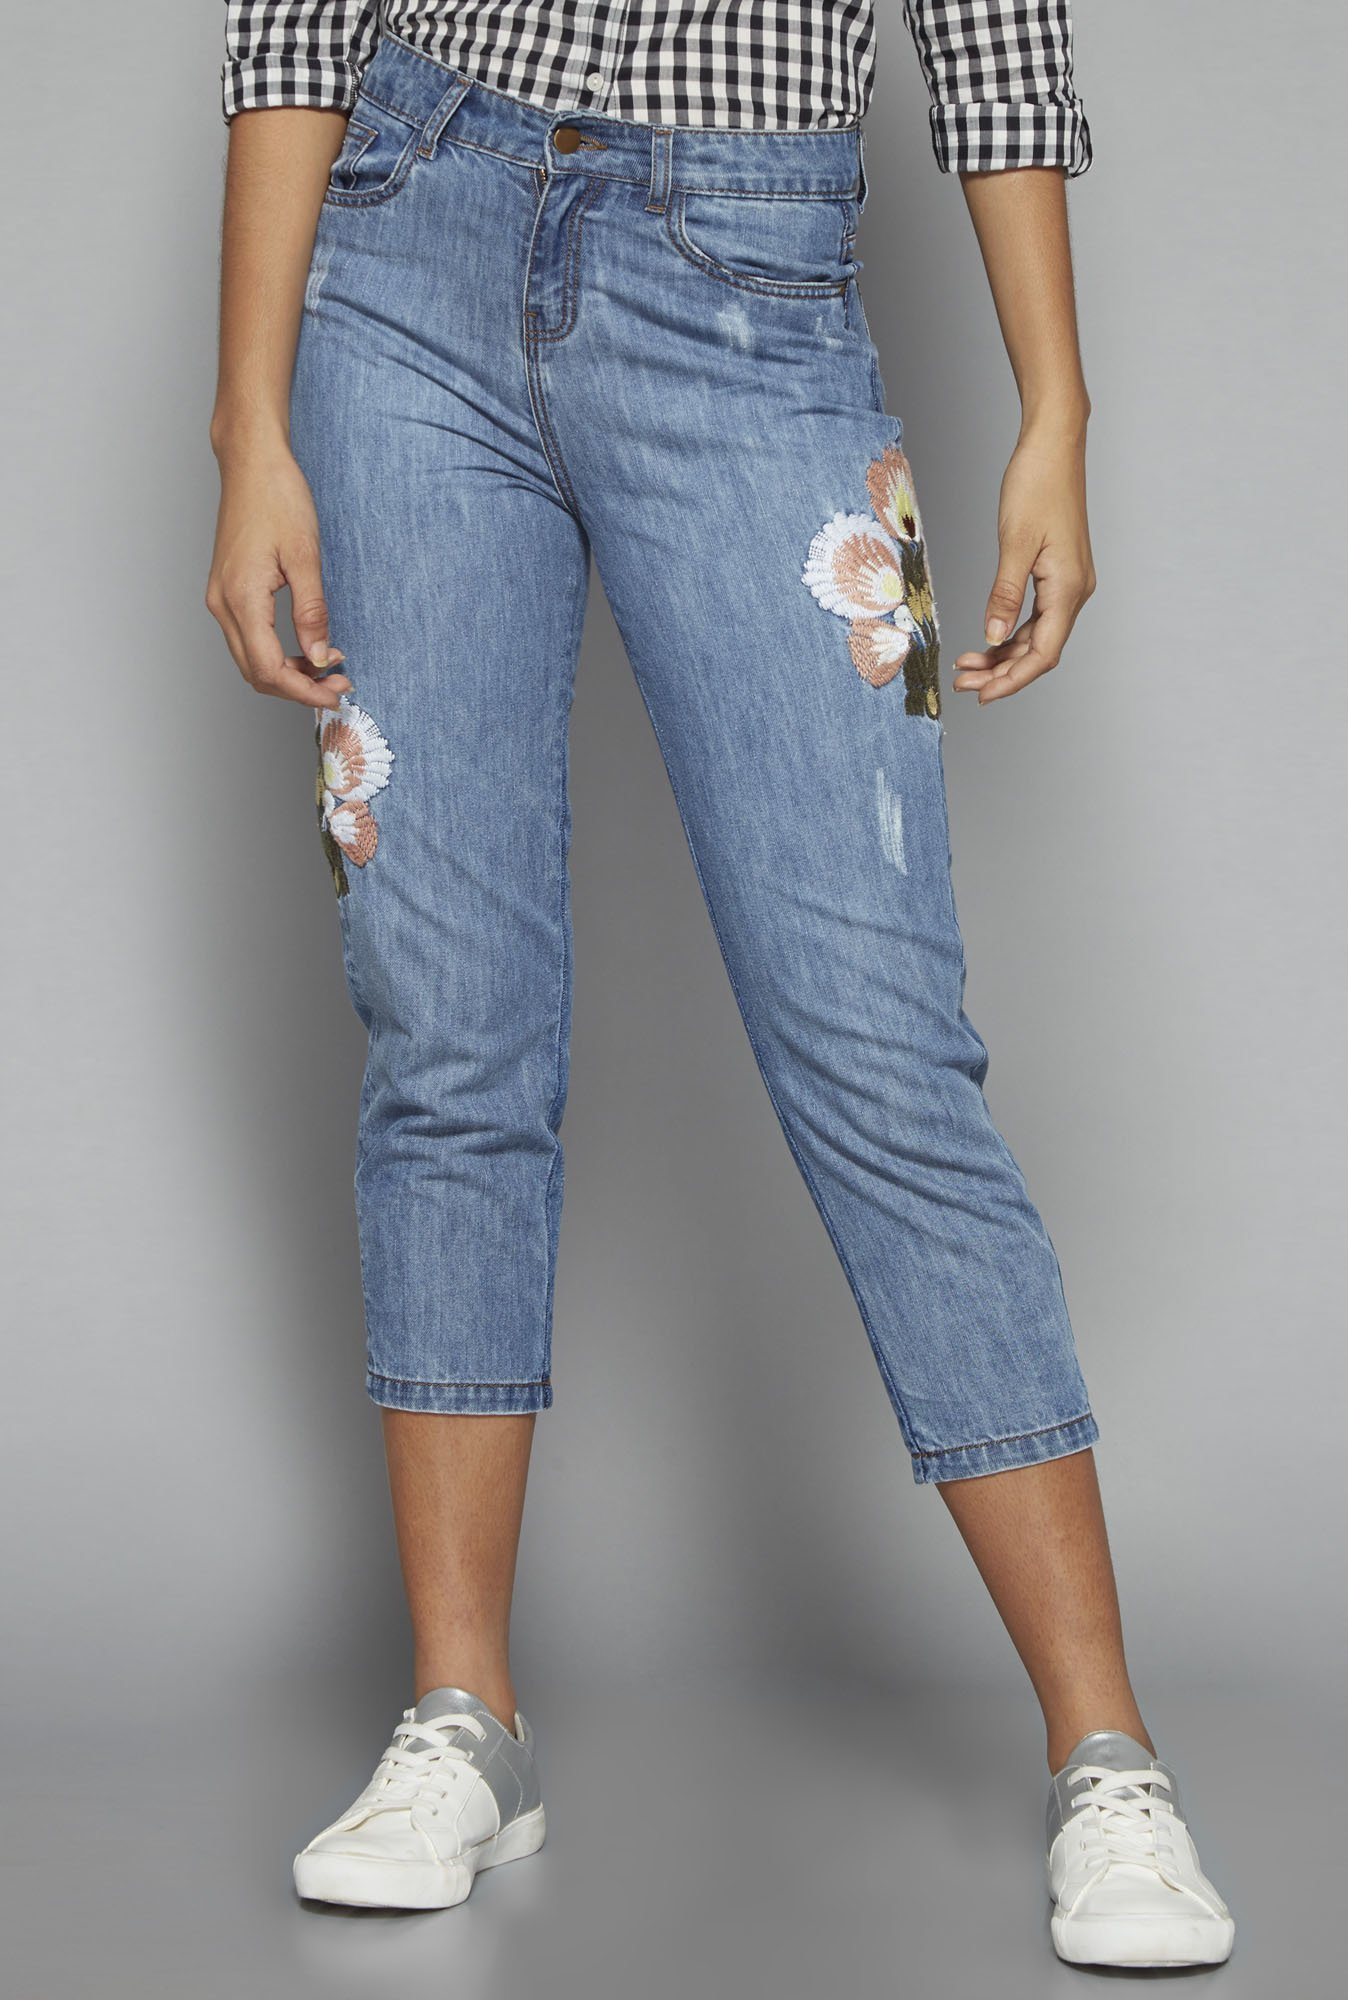 Nuon by Westside Blue Crown Jeans